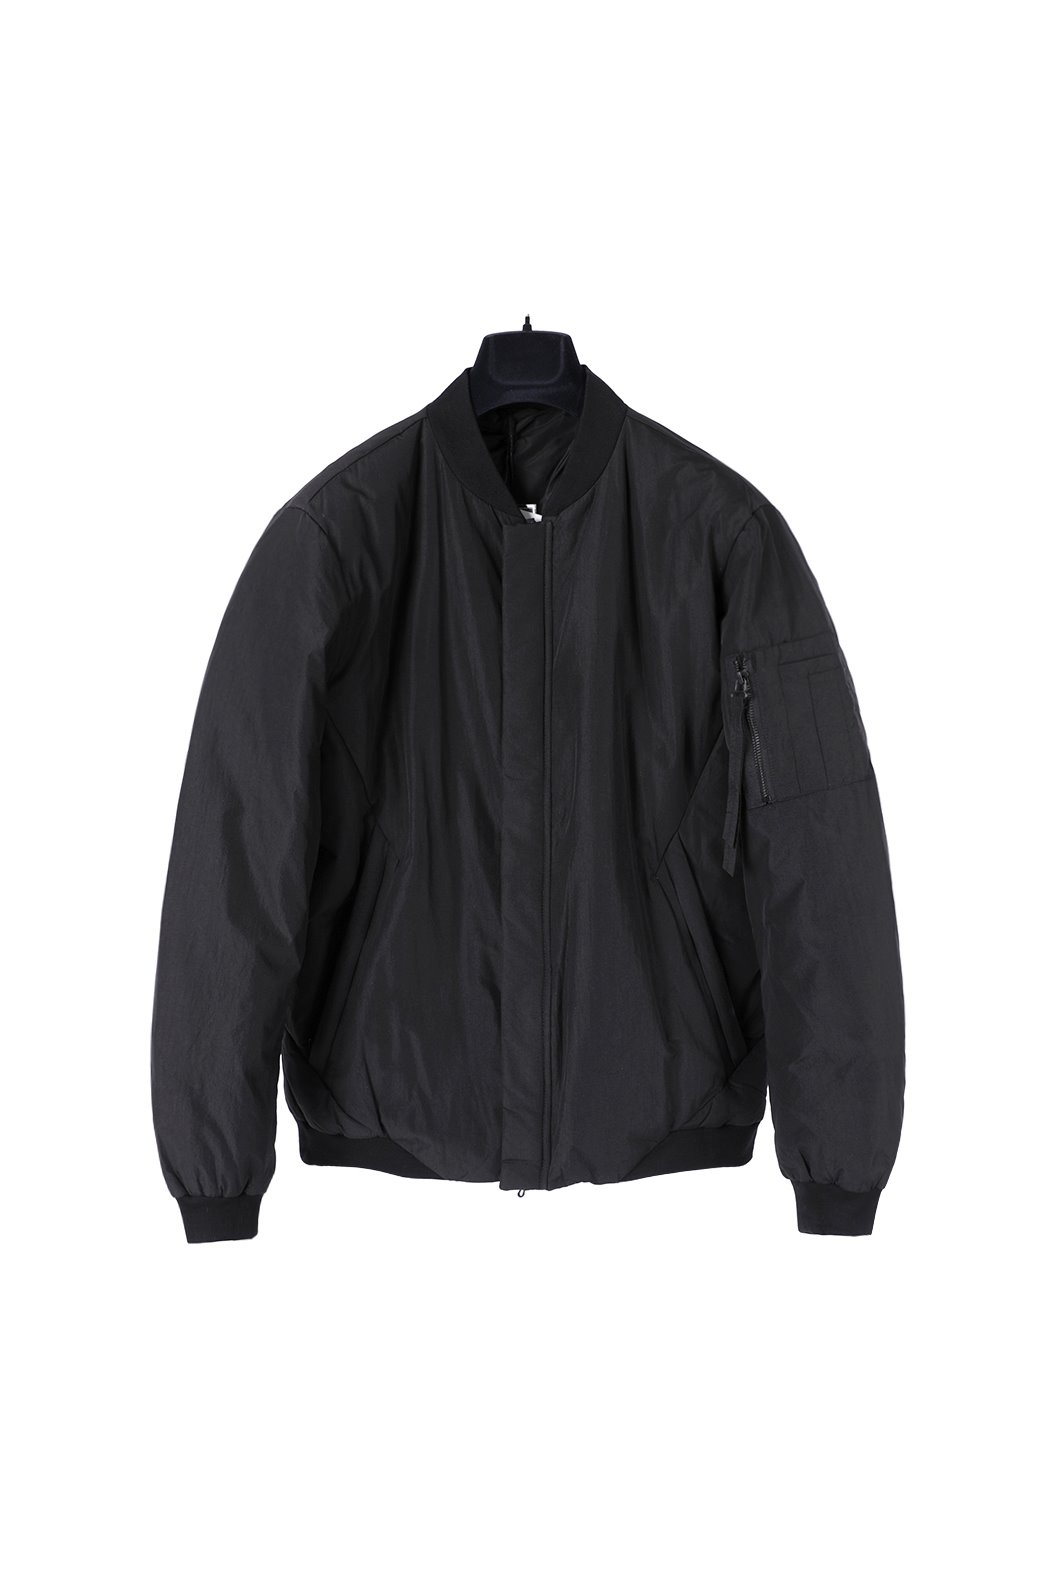 Pendexy Duck Down Blouson-2Color